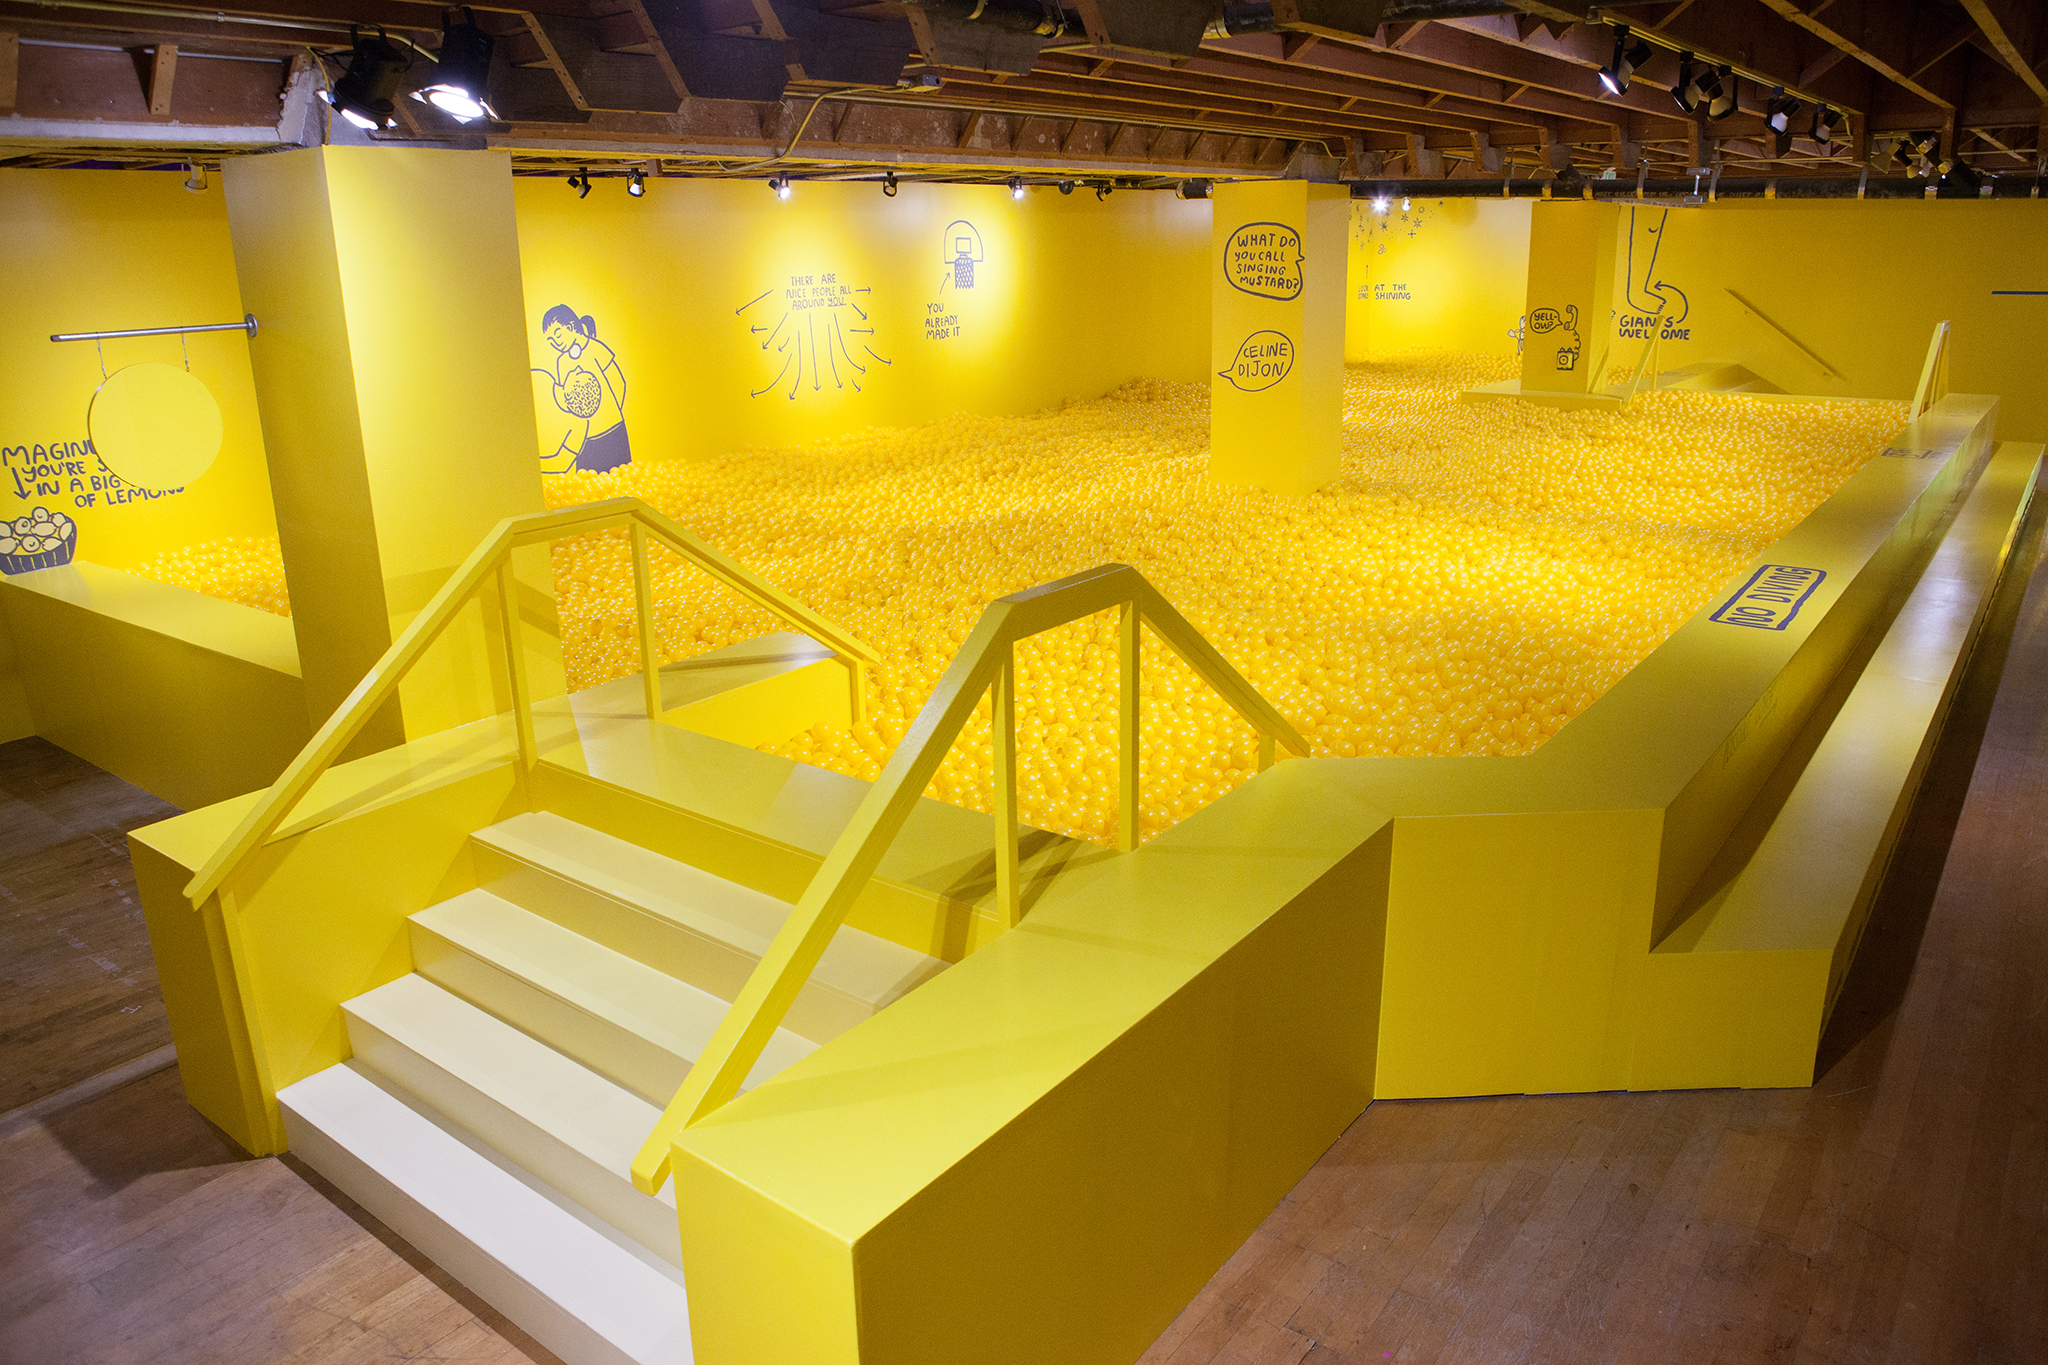 Dive into this giant yellow ball pit at Union Square